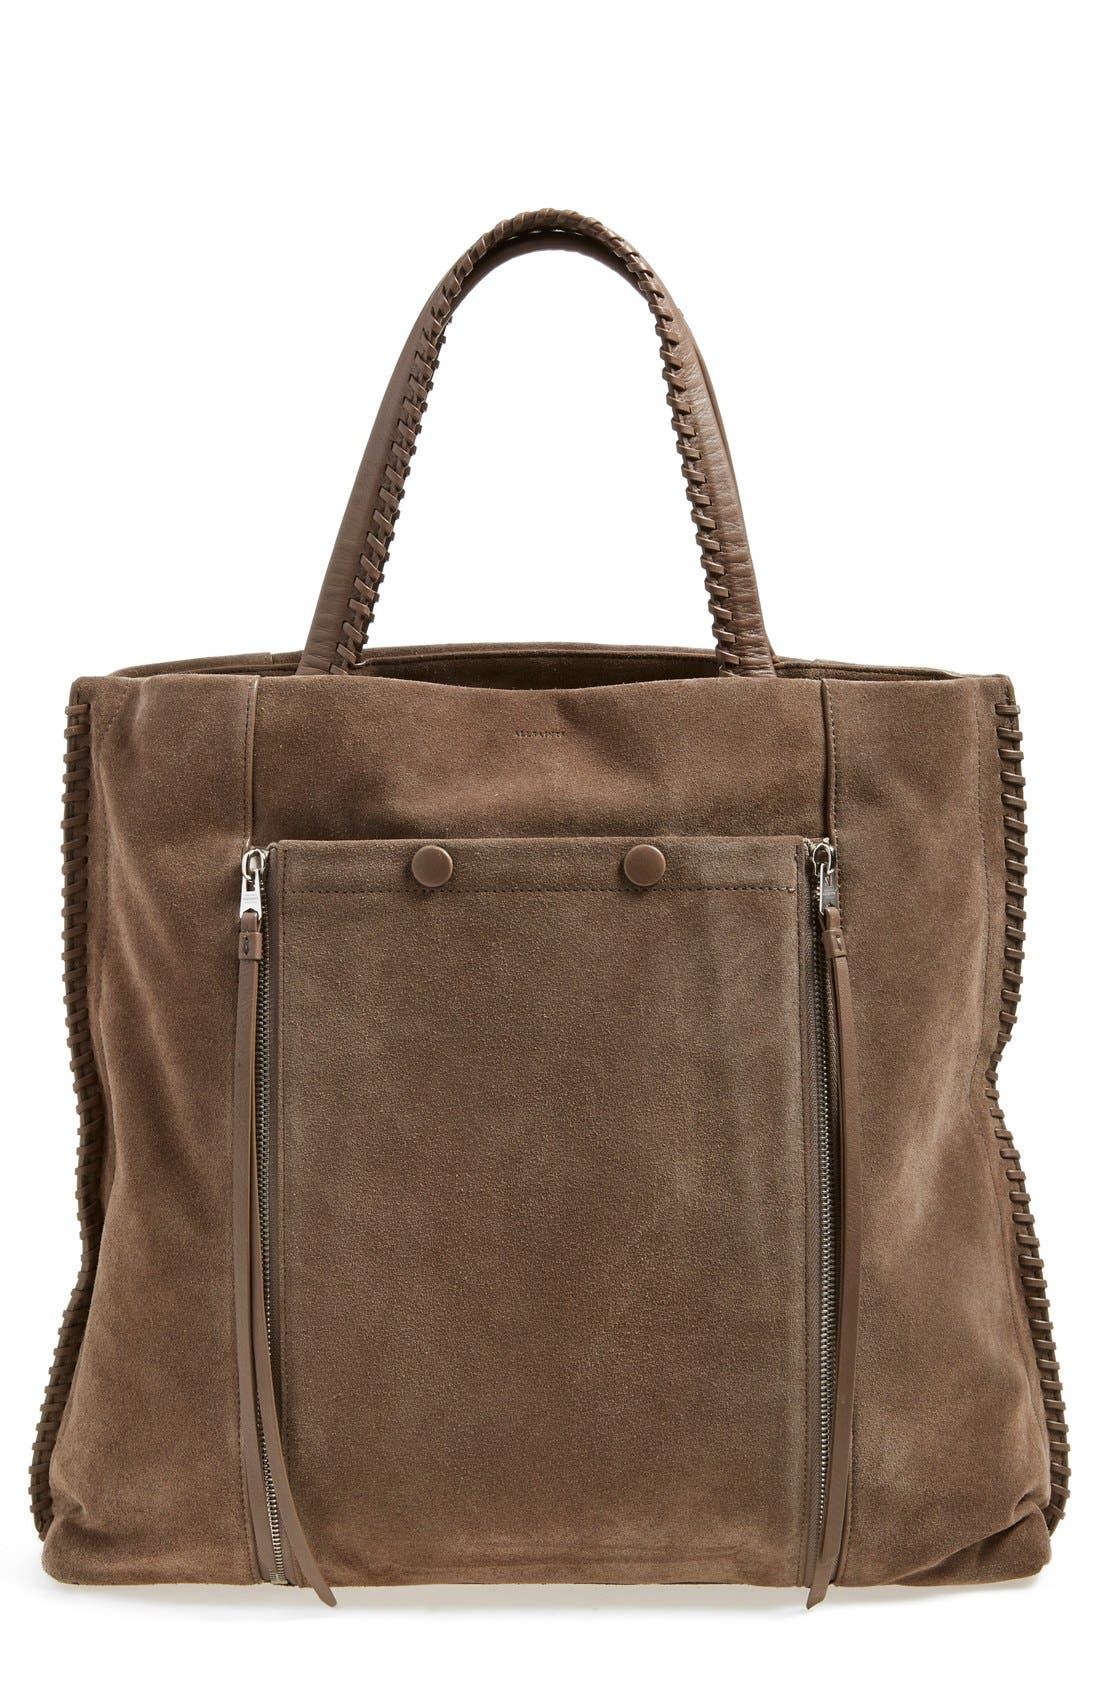 'Fleurdelis North/South' Tote,                             Main thumbnail 1, color,                             Almond/ Taupe